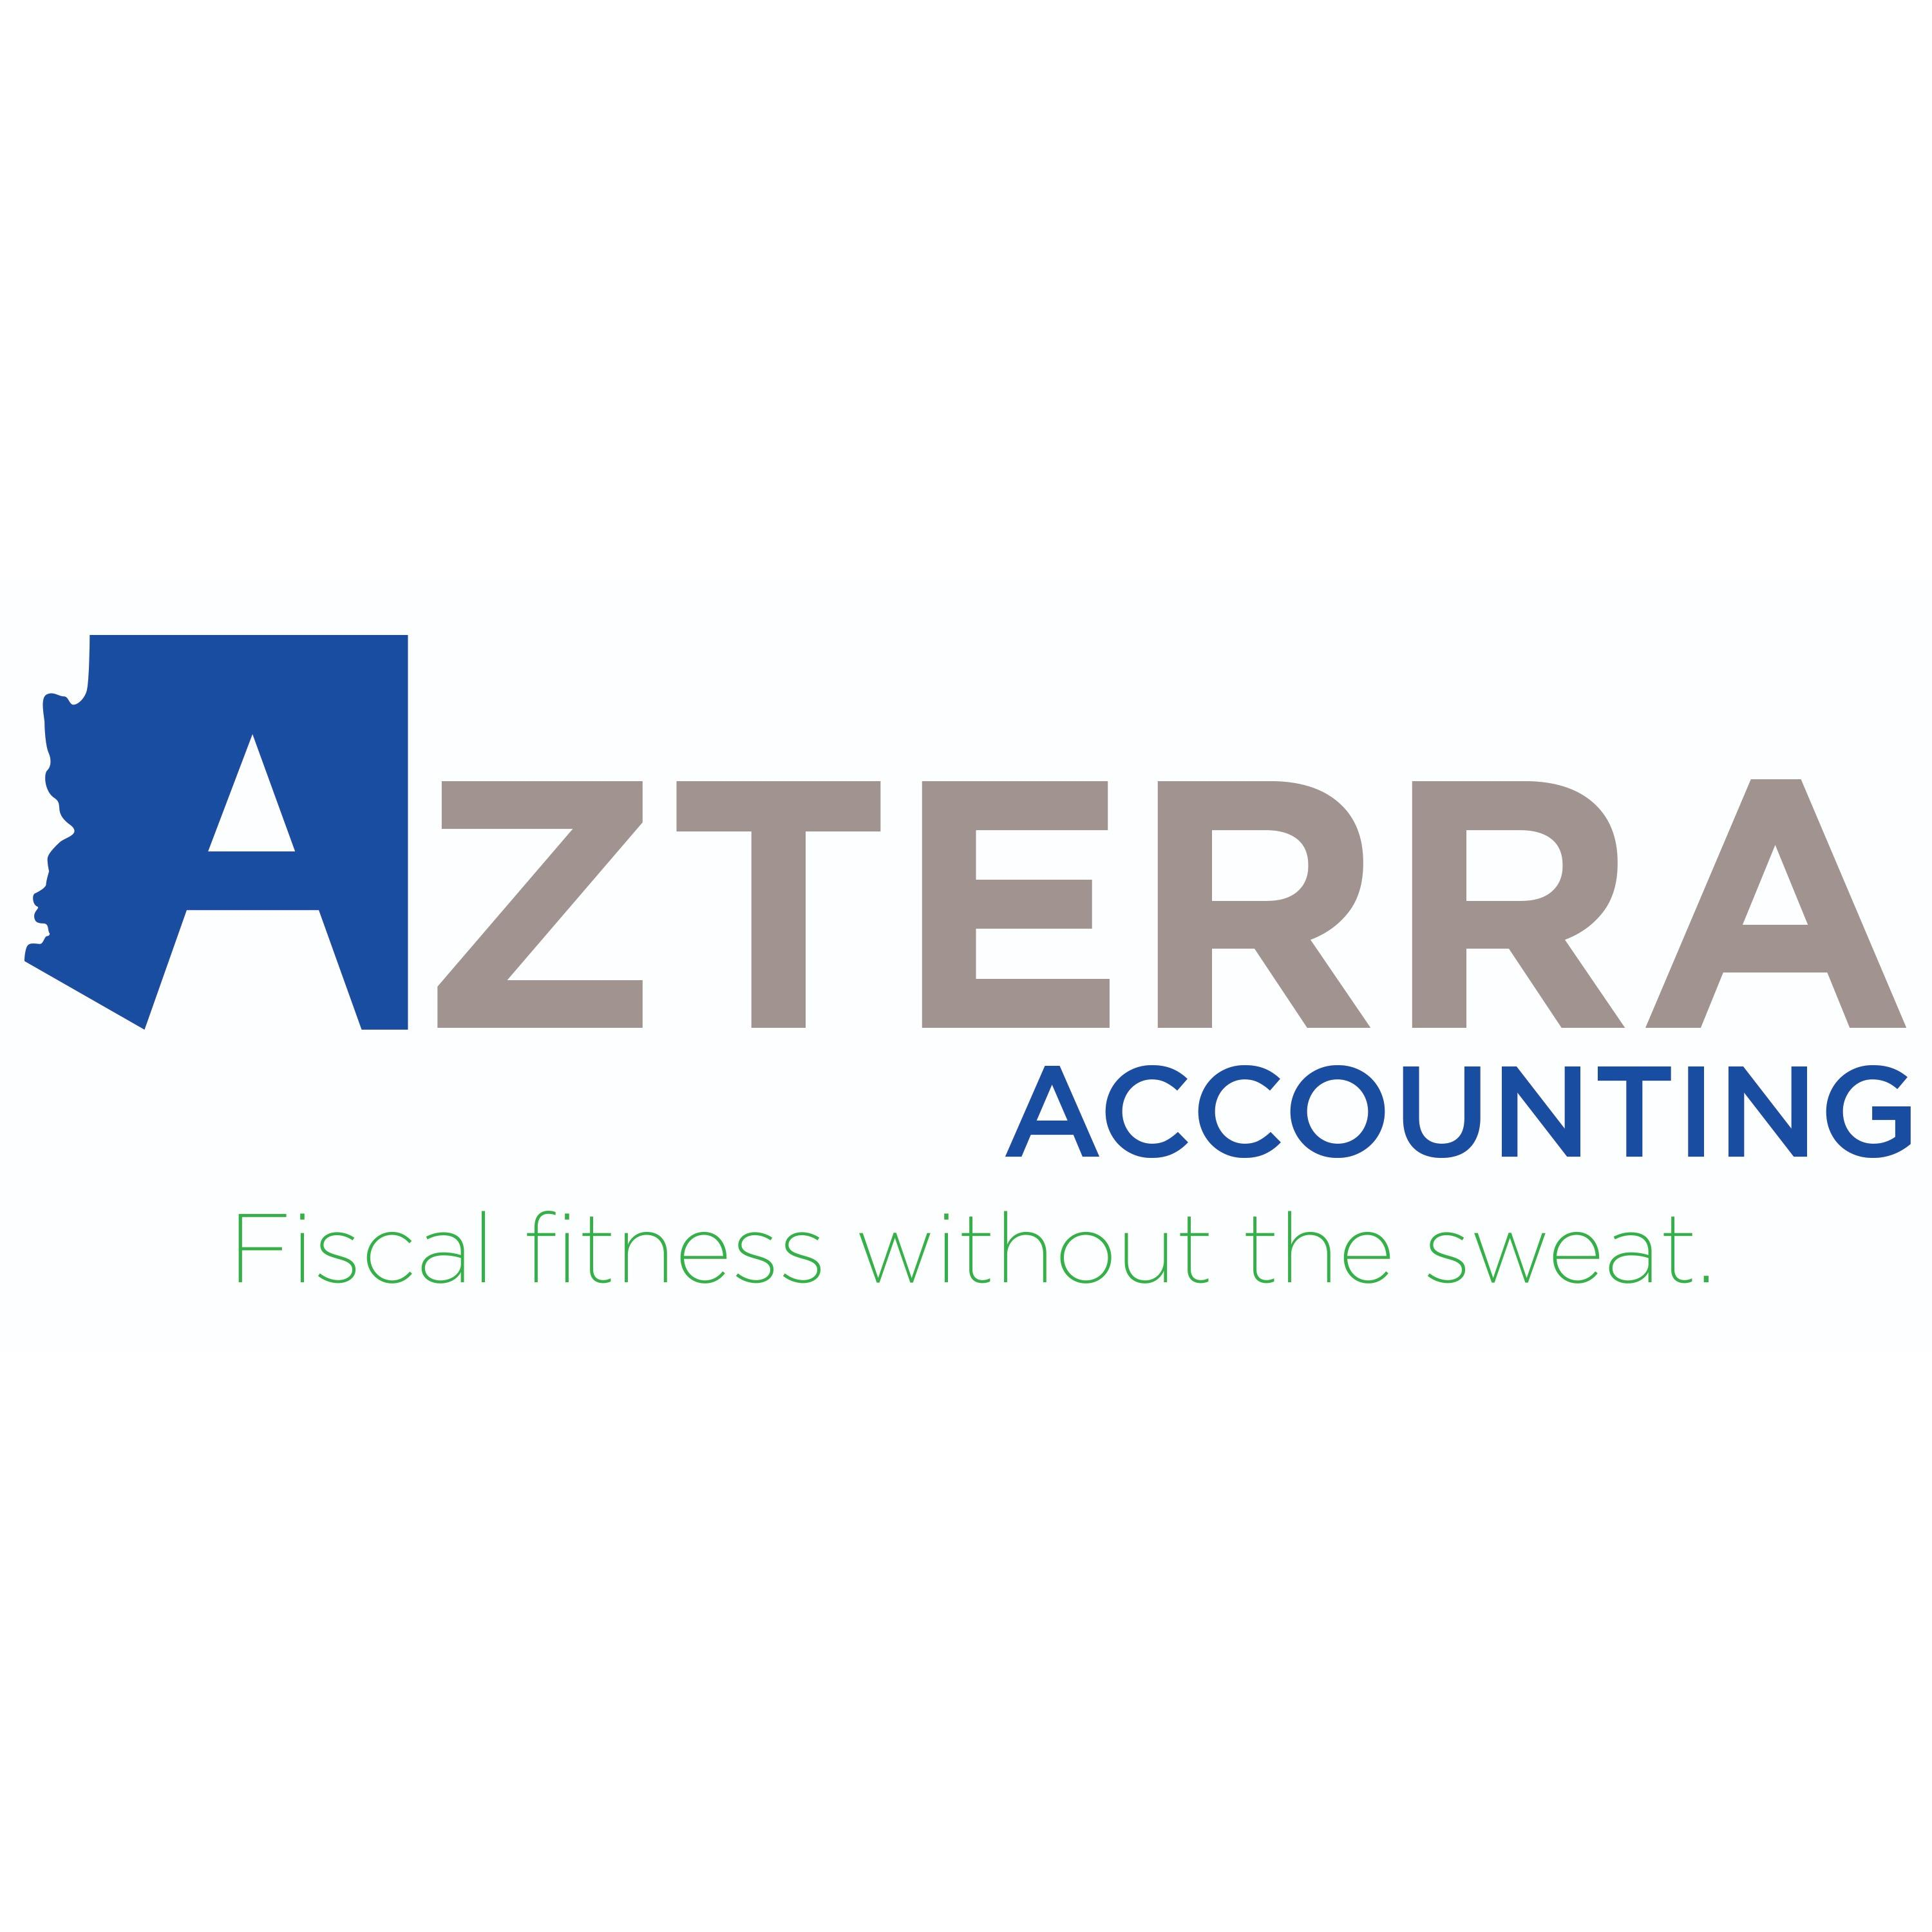 Azterra Accounting Services